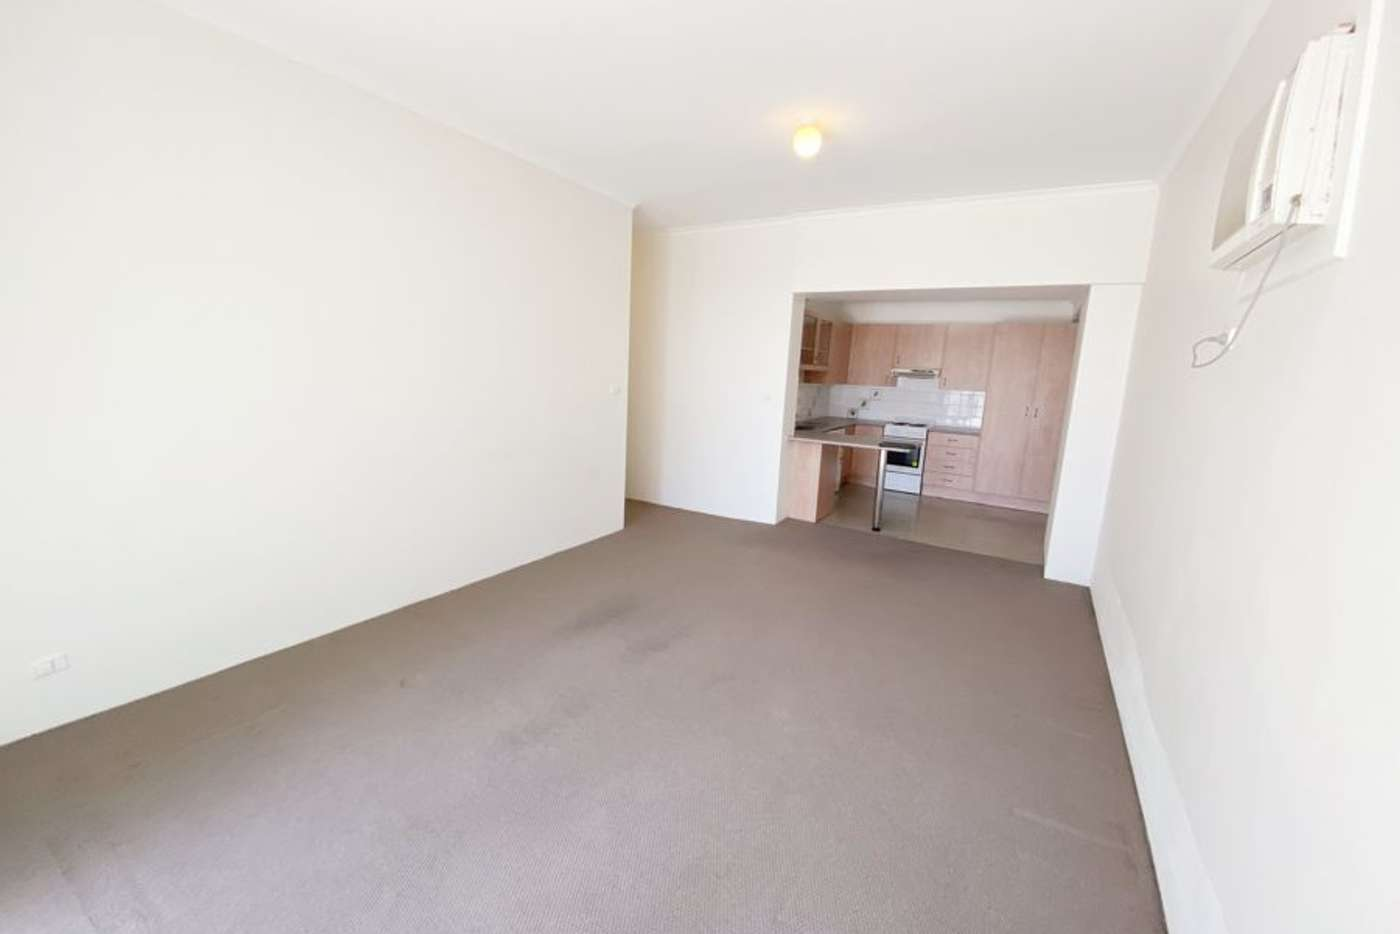 Main view of Homely unit listing, 408/284 Pacific Hwy, Greenwich NSW 2065